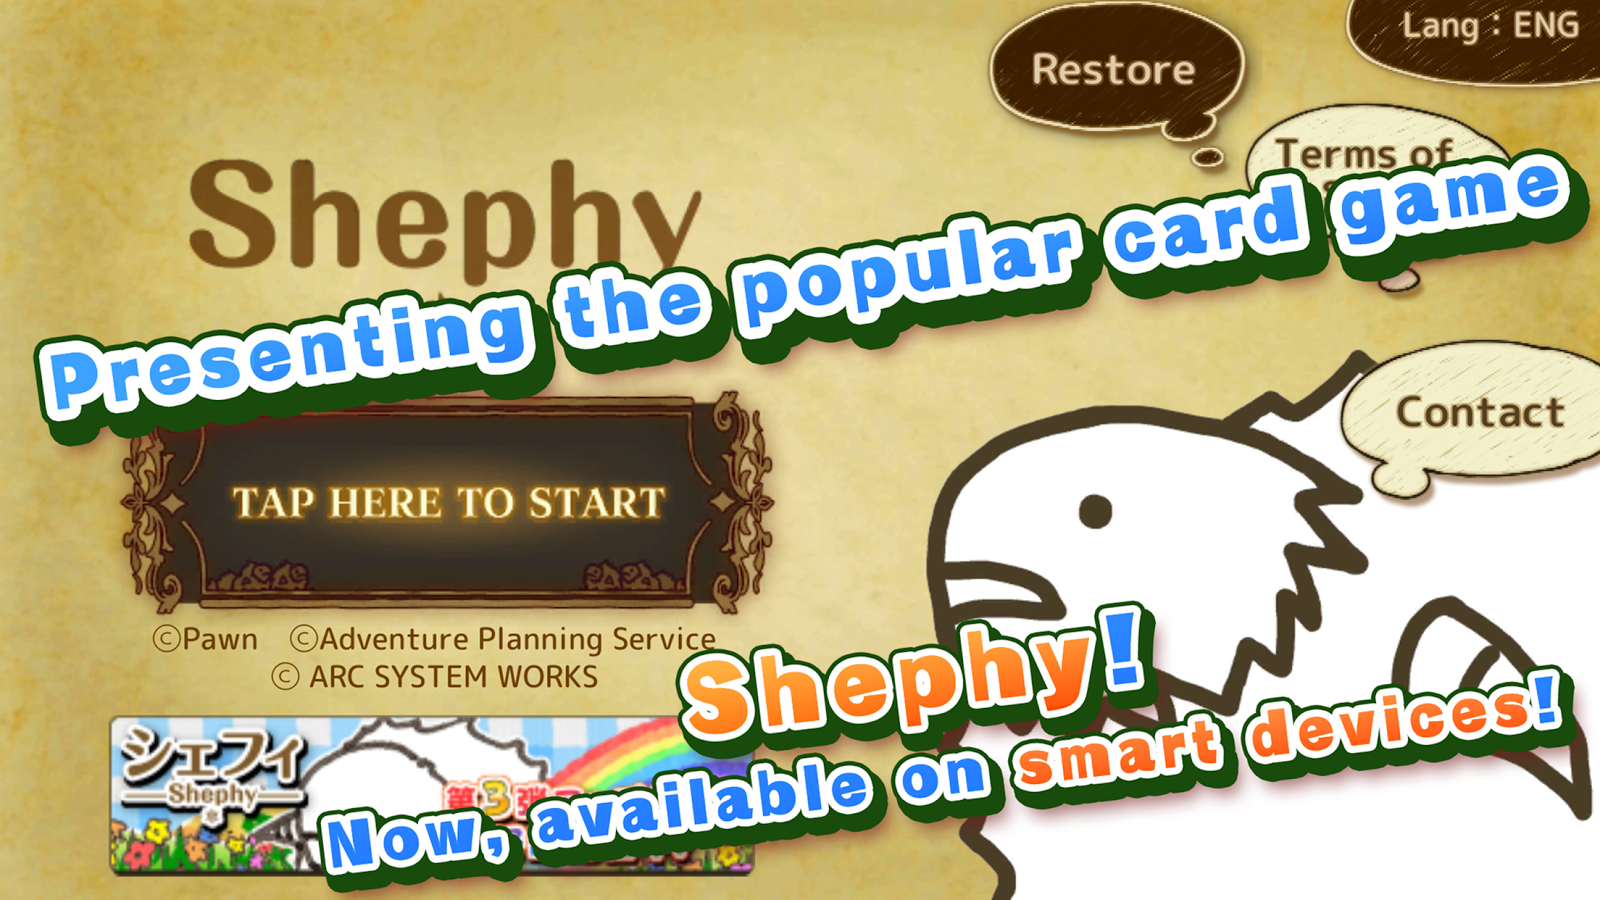 Shephy SolitaireSheepCardGame- screenshot